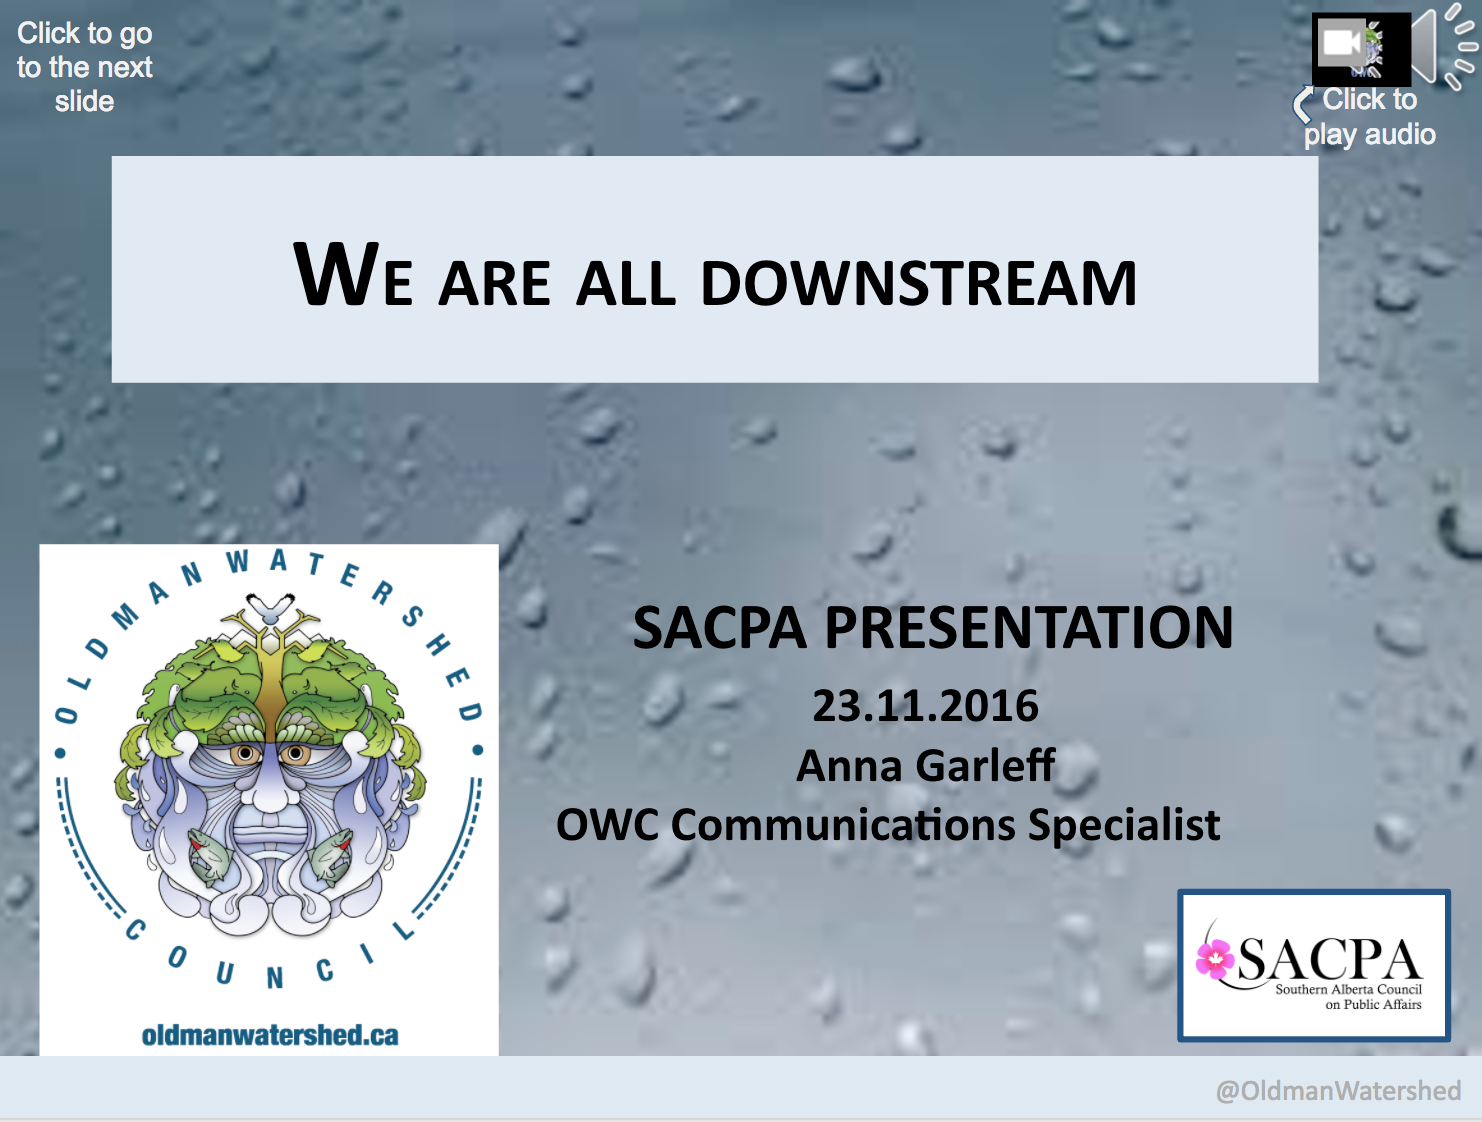 Film Project Update - Presentation slides from SACPA event on November 23, 2016,which provided an update on the film project and related endeavours.